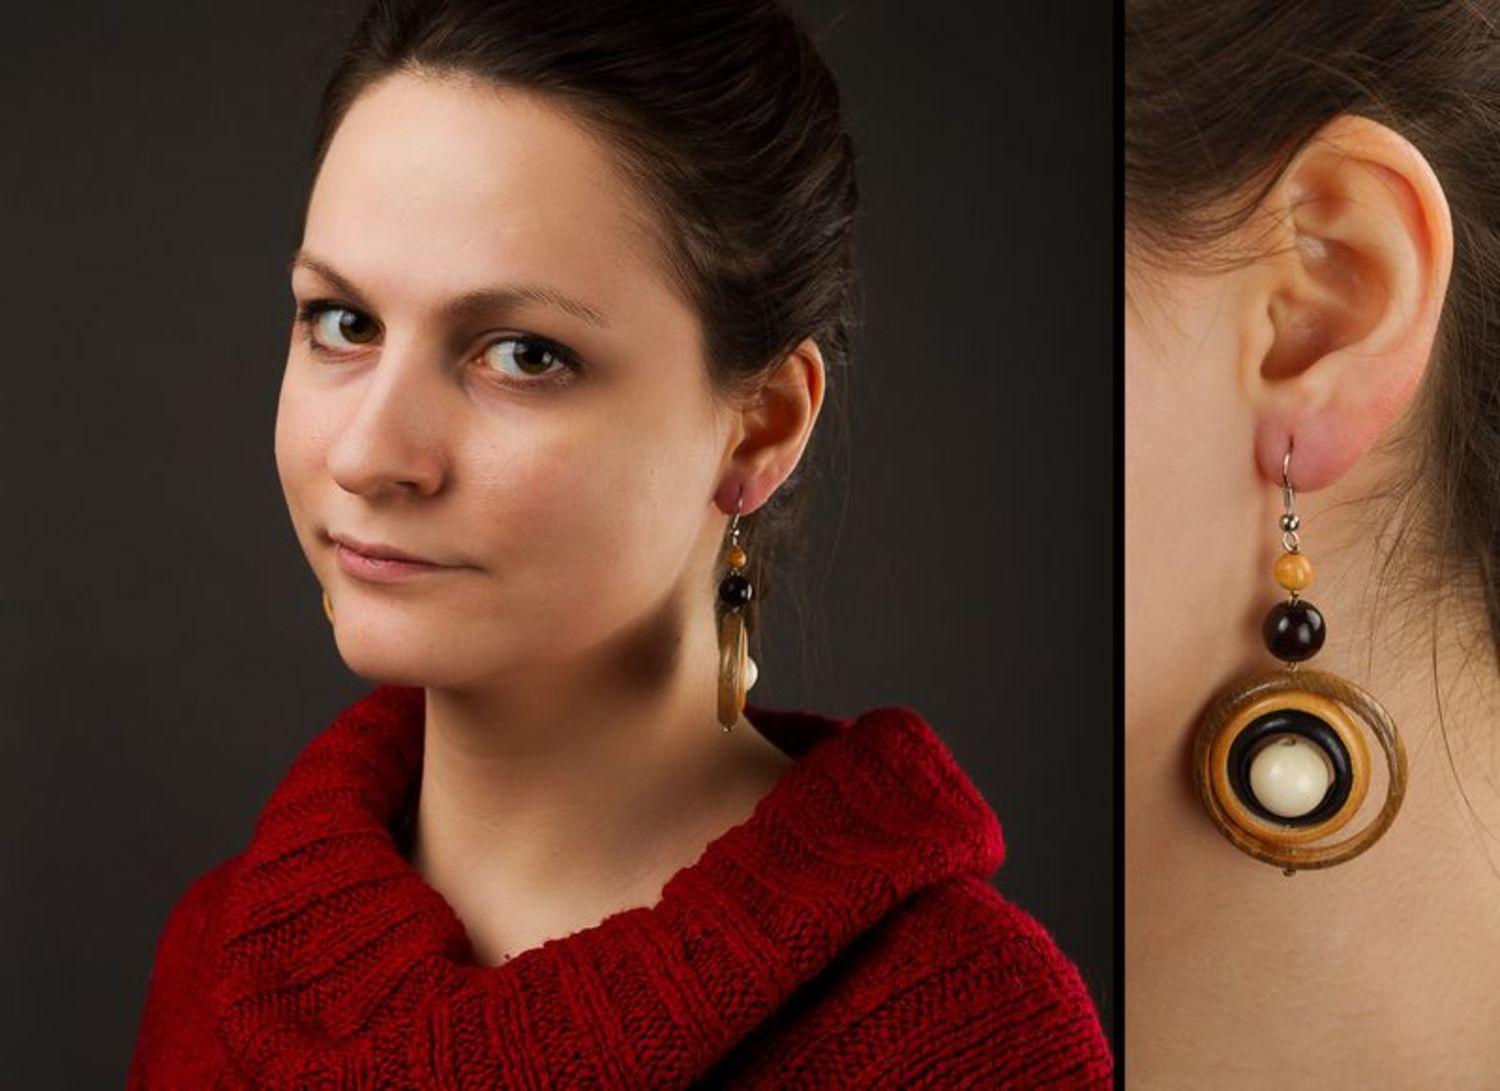 Round wooden earrings photo 2